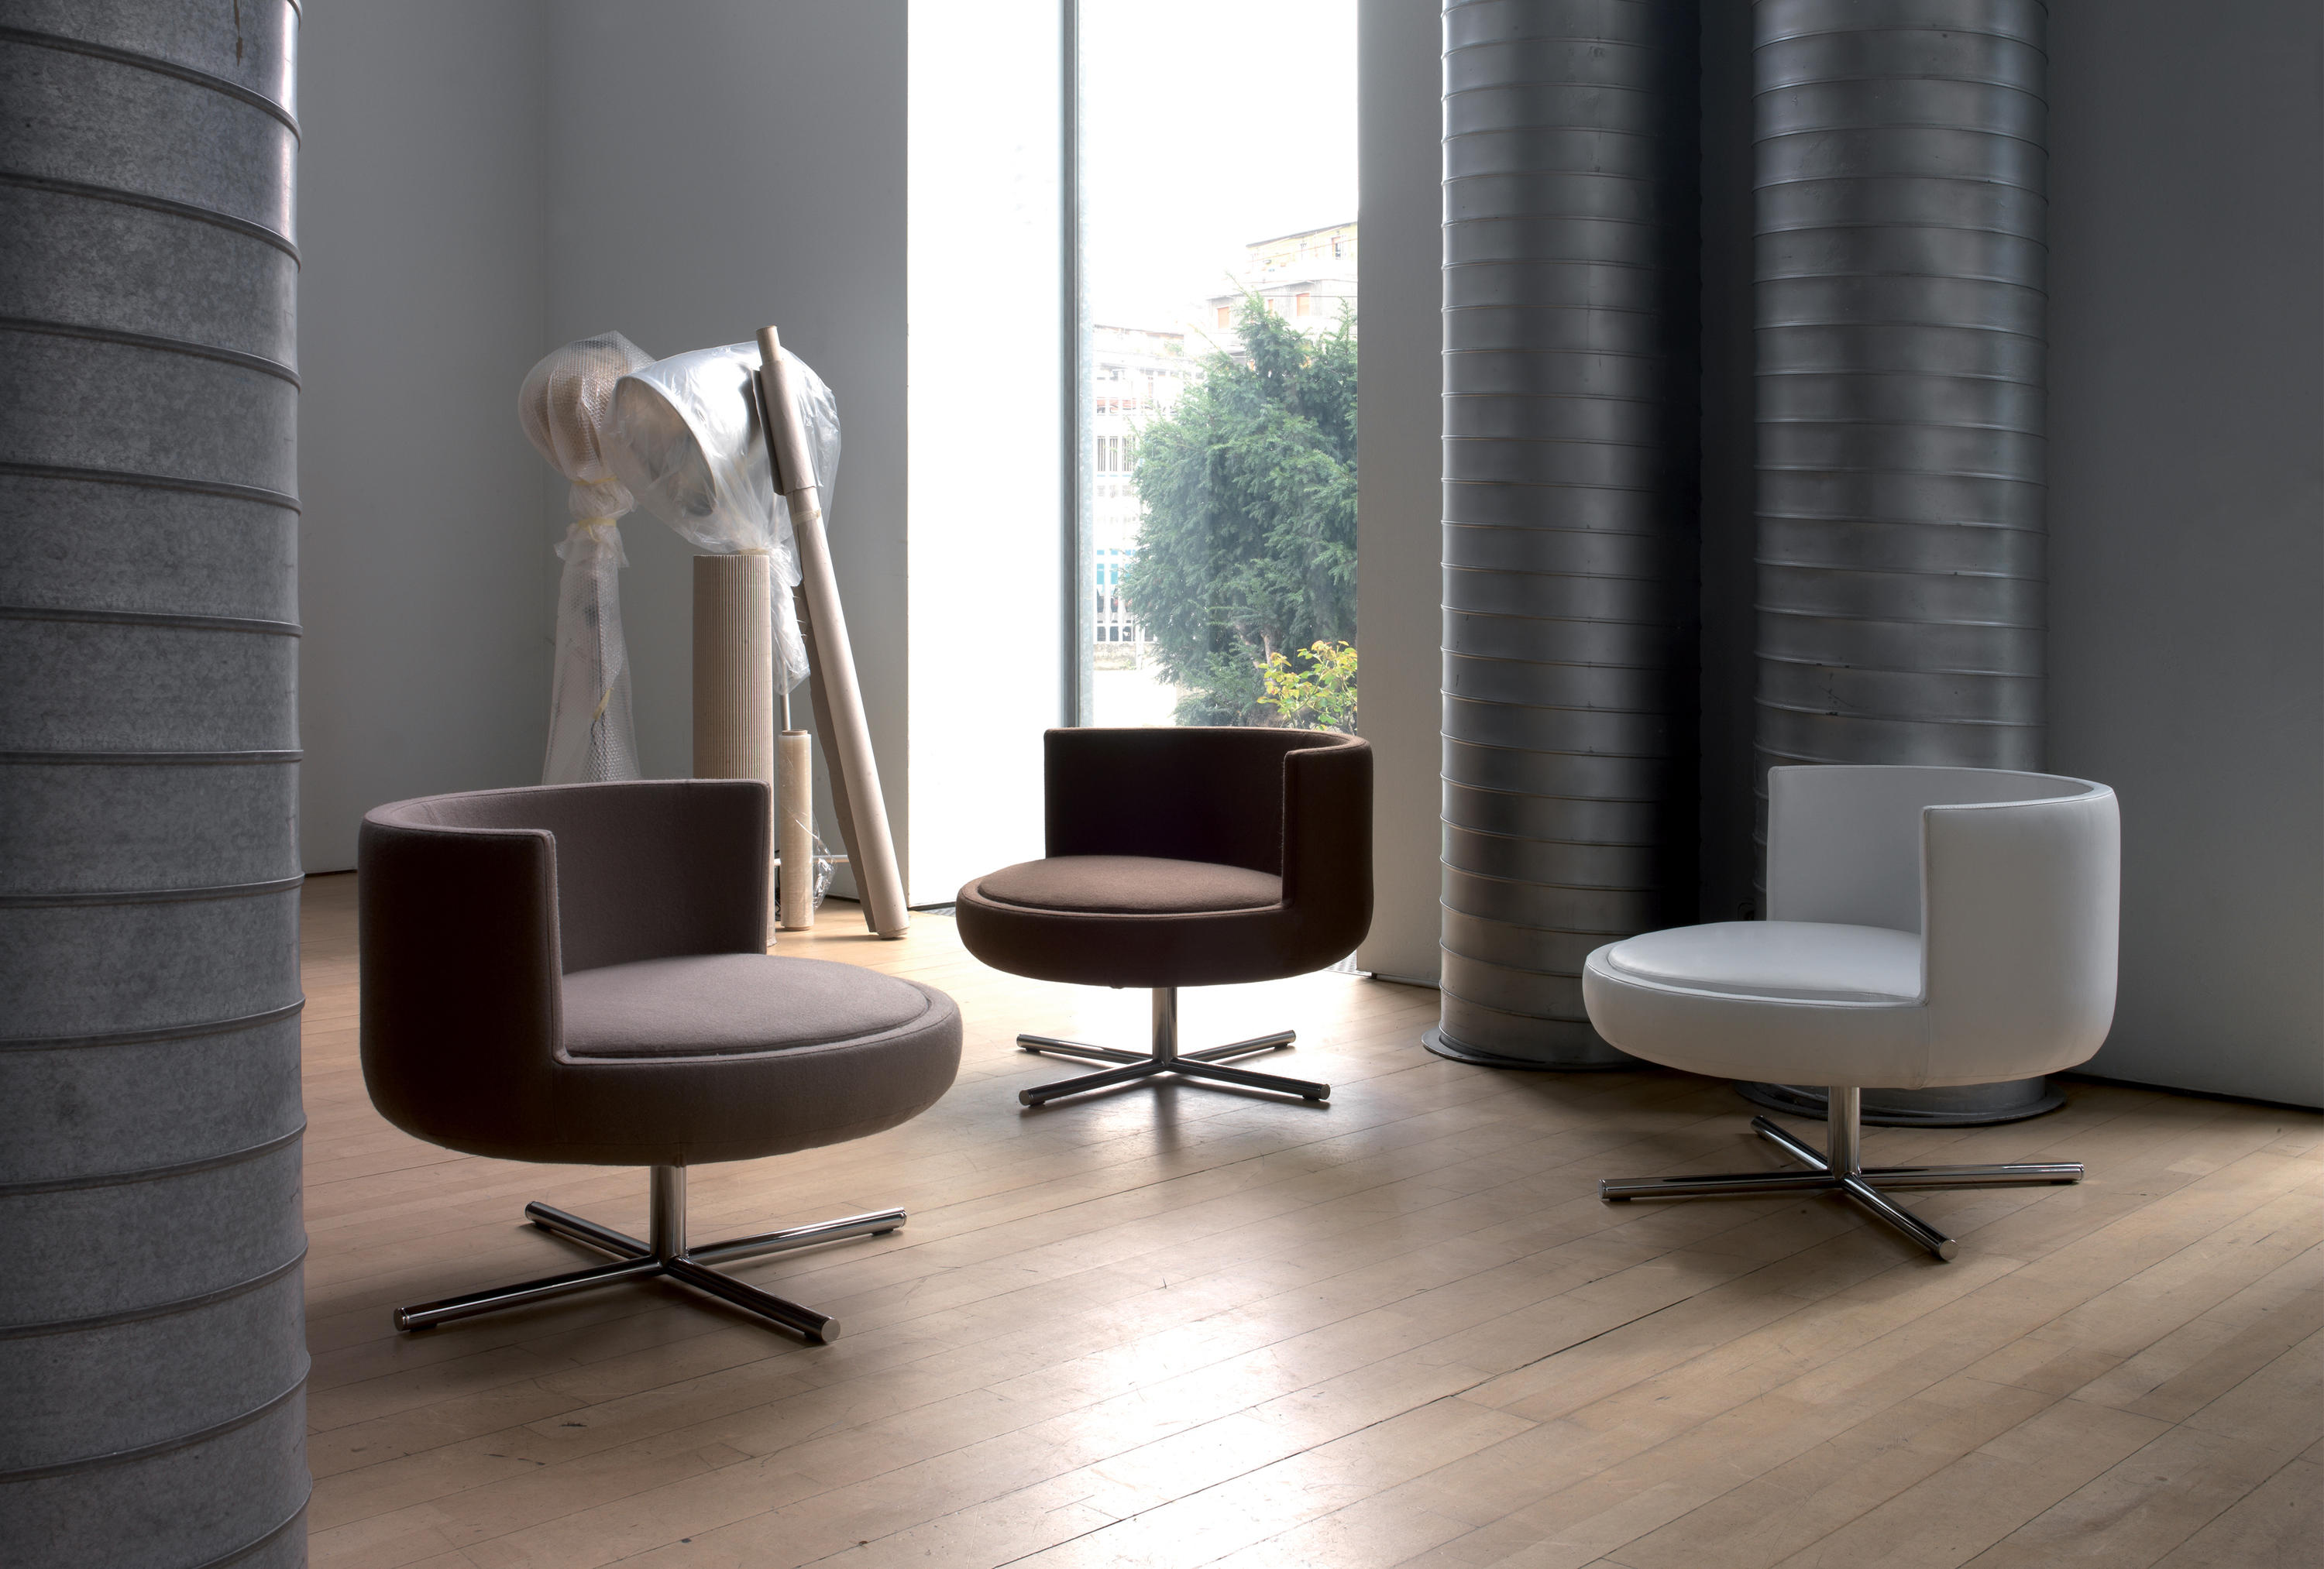 Design Lounge Sessel Round - Armchairs From B&t Design | Architonic